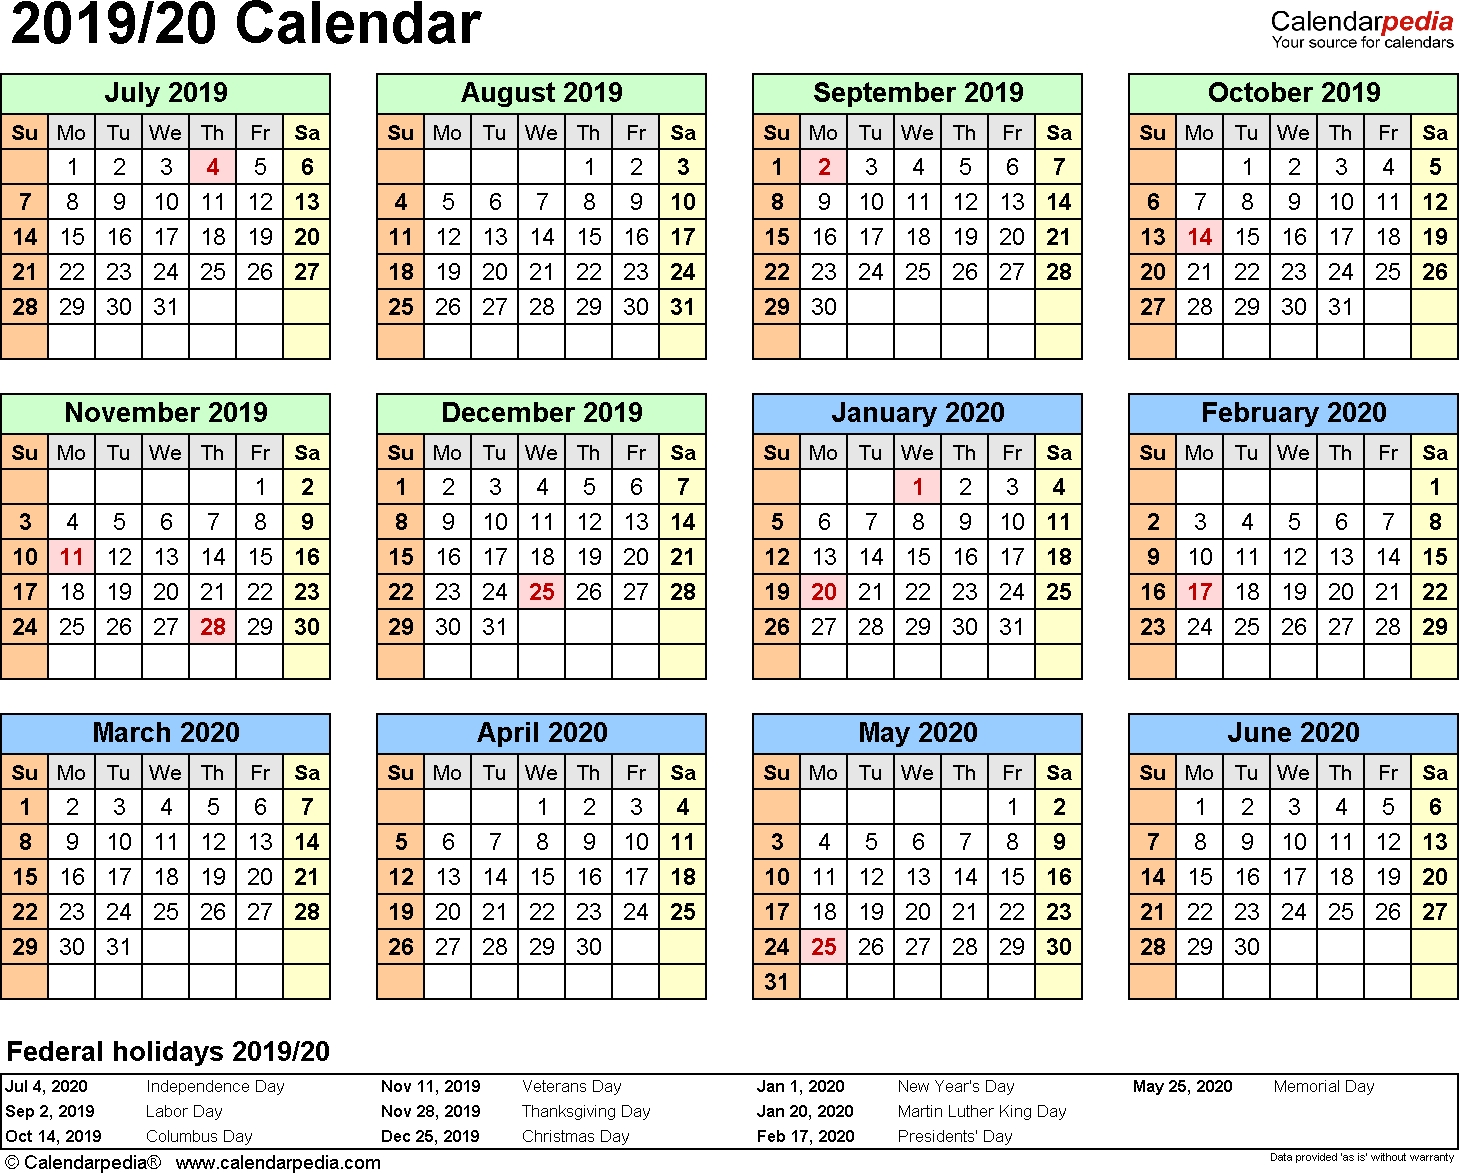 Split Year Calendar 2019/20 (July To June) - Word Templates intended for Year At A Glance Calendar 2019 2020